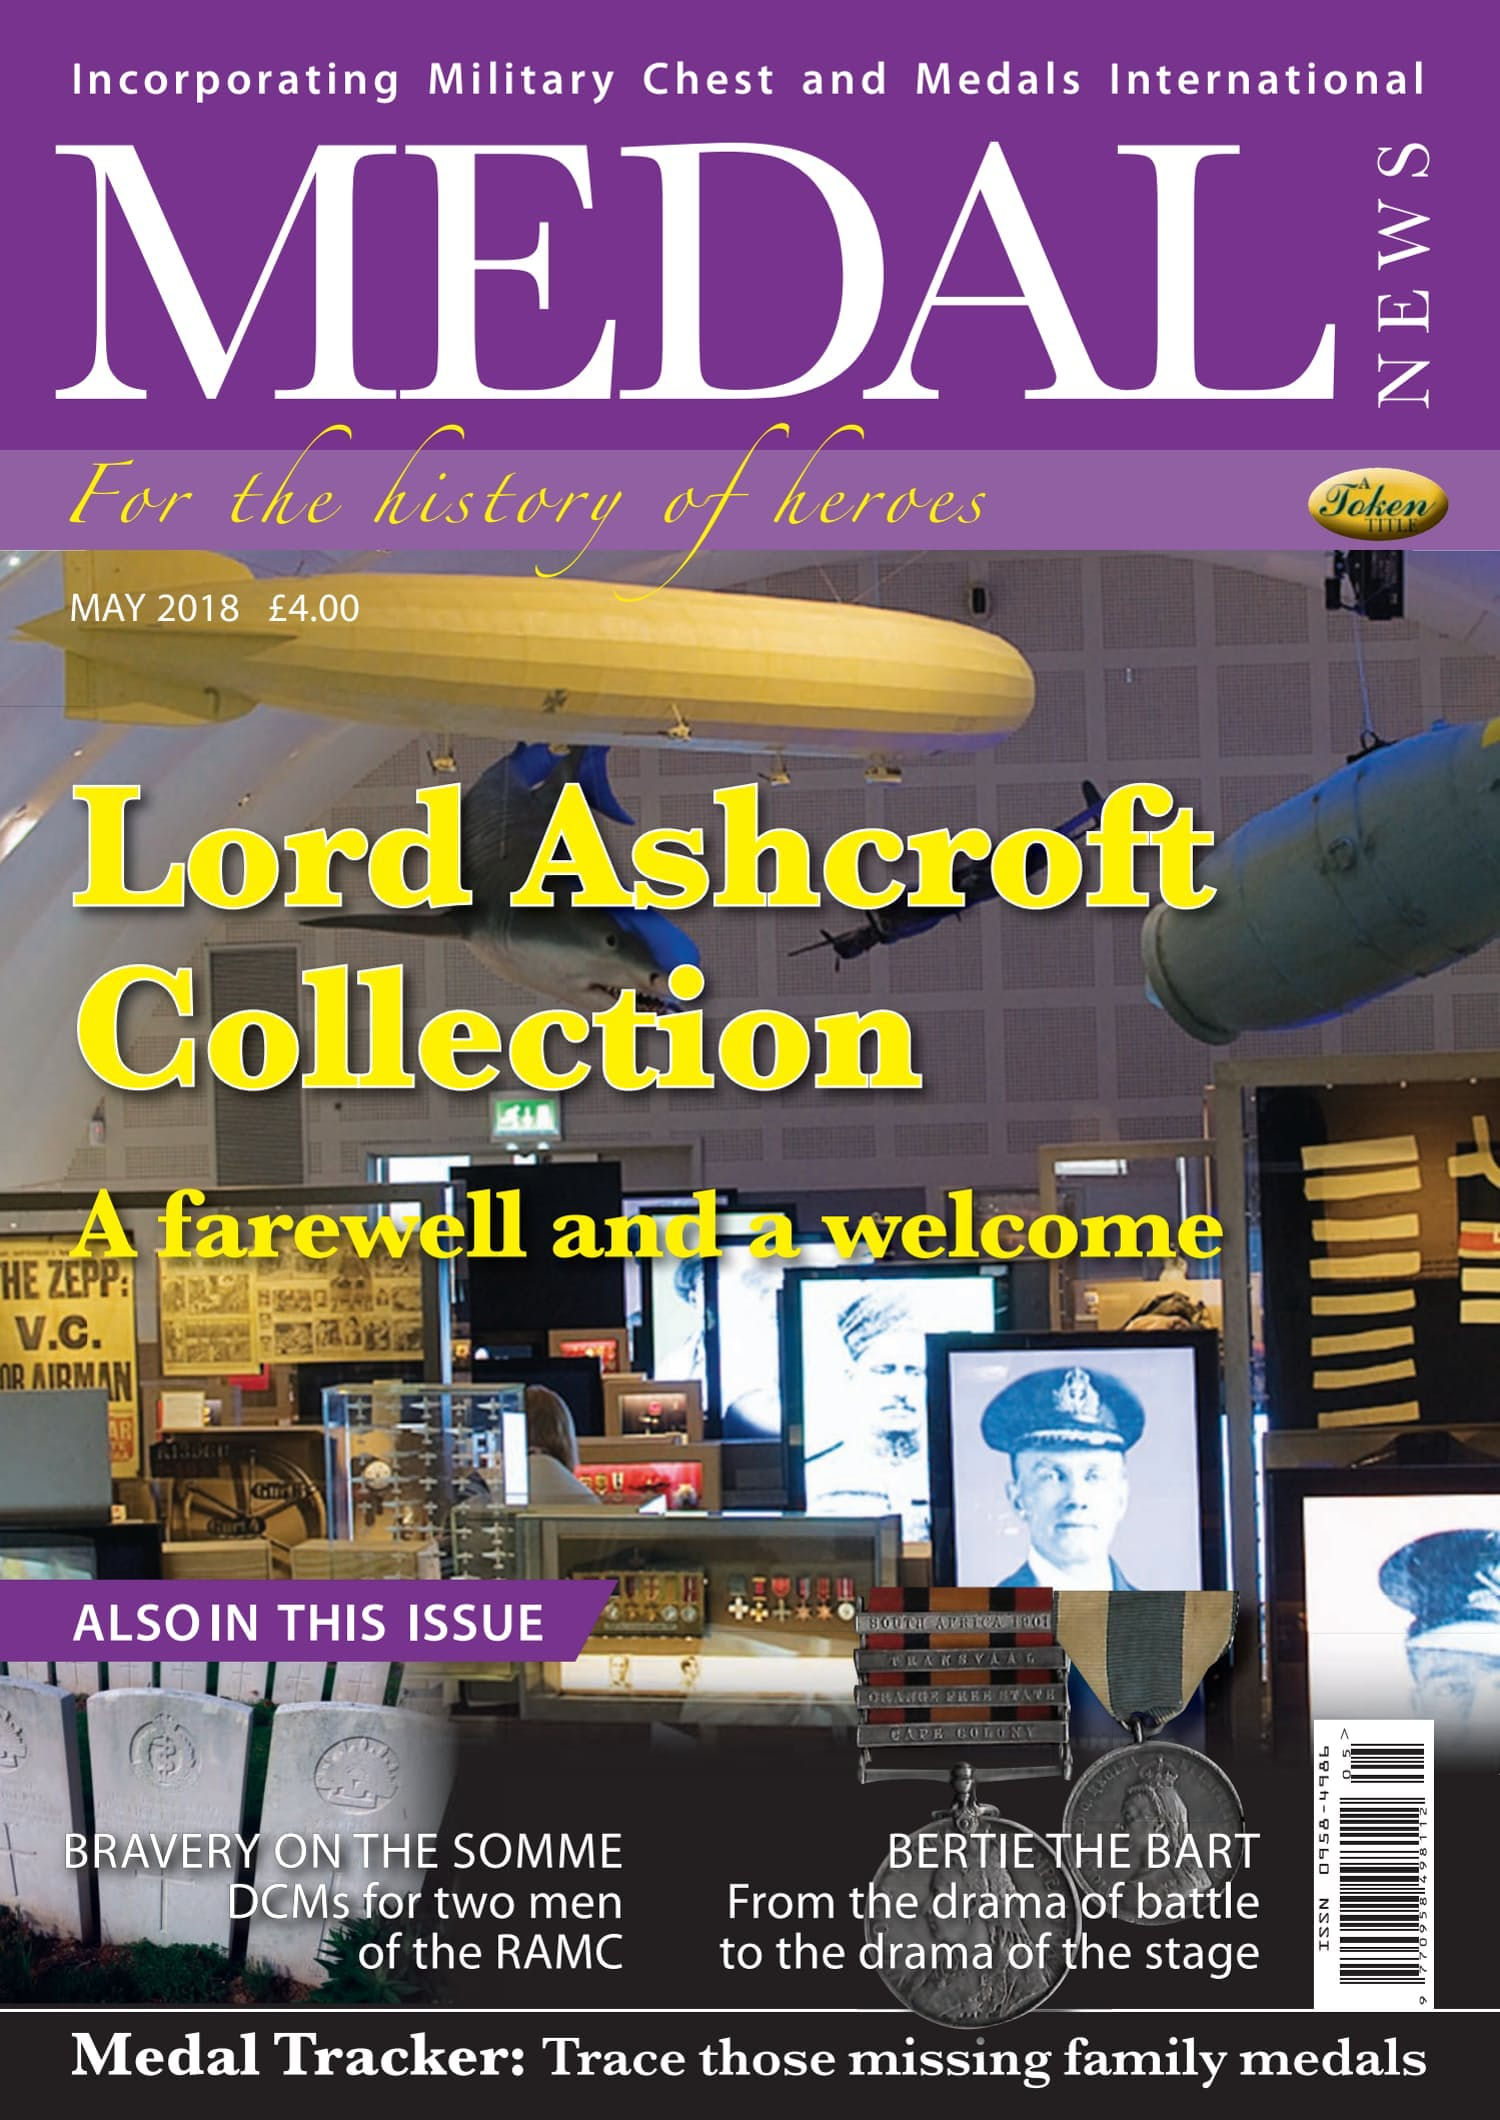 Front cover of 'Lord Ashcroft Collection', Medal News May 2018, Volume 56, Number 5 by Token Publishing